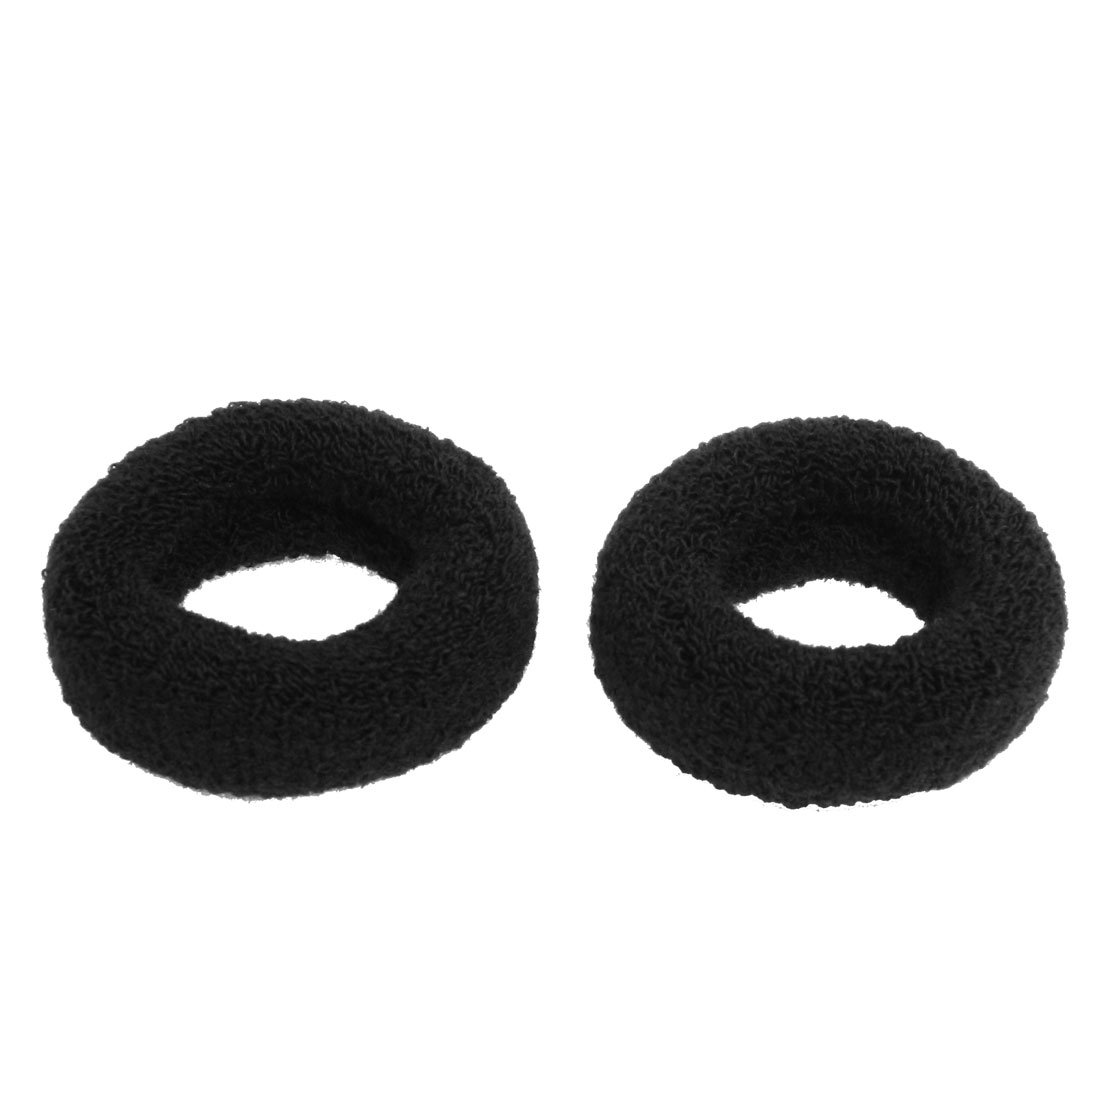 2 Pcs Woman Elastic Solid Black Wide Plush Hair Tie Band